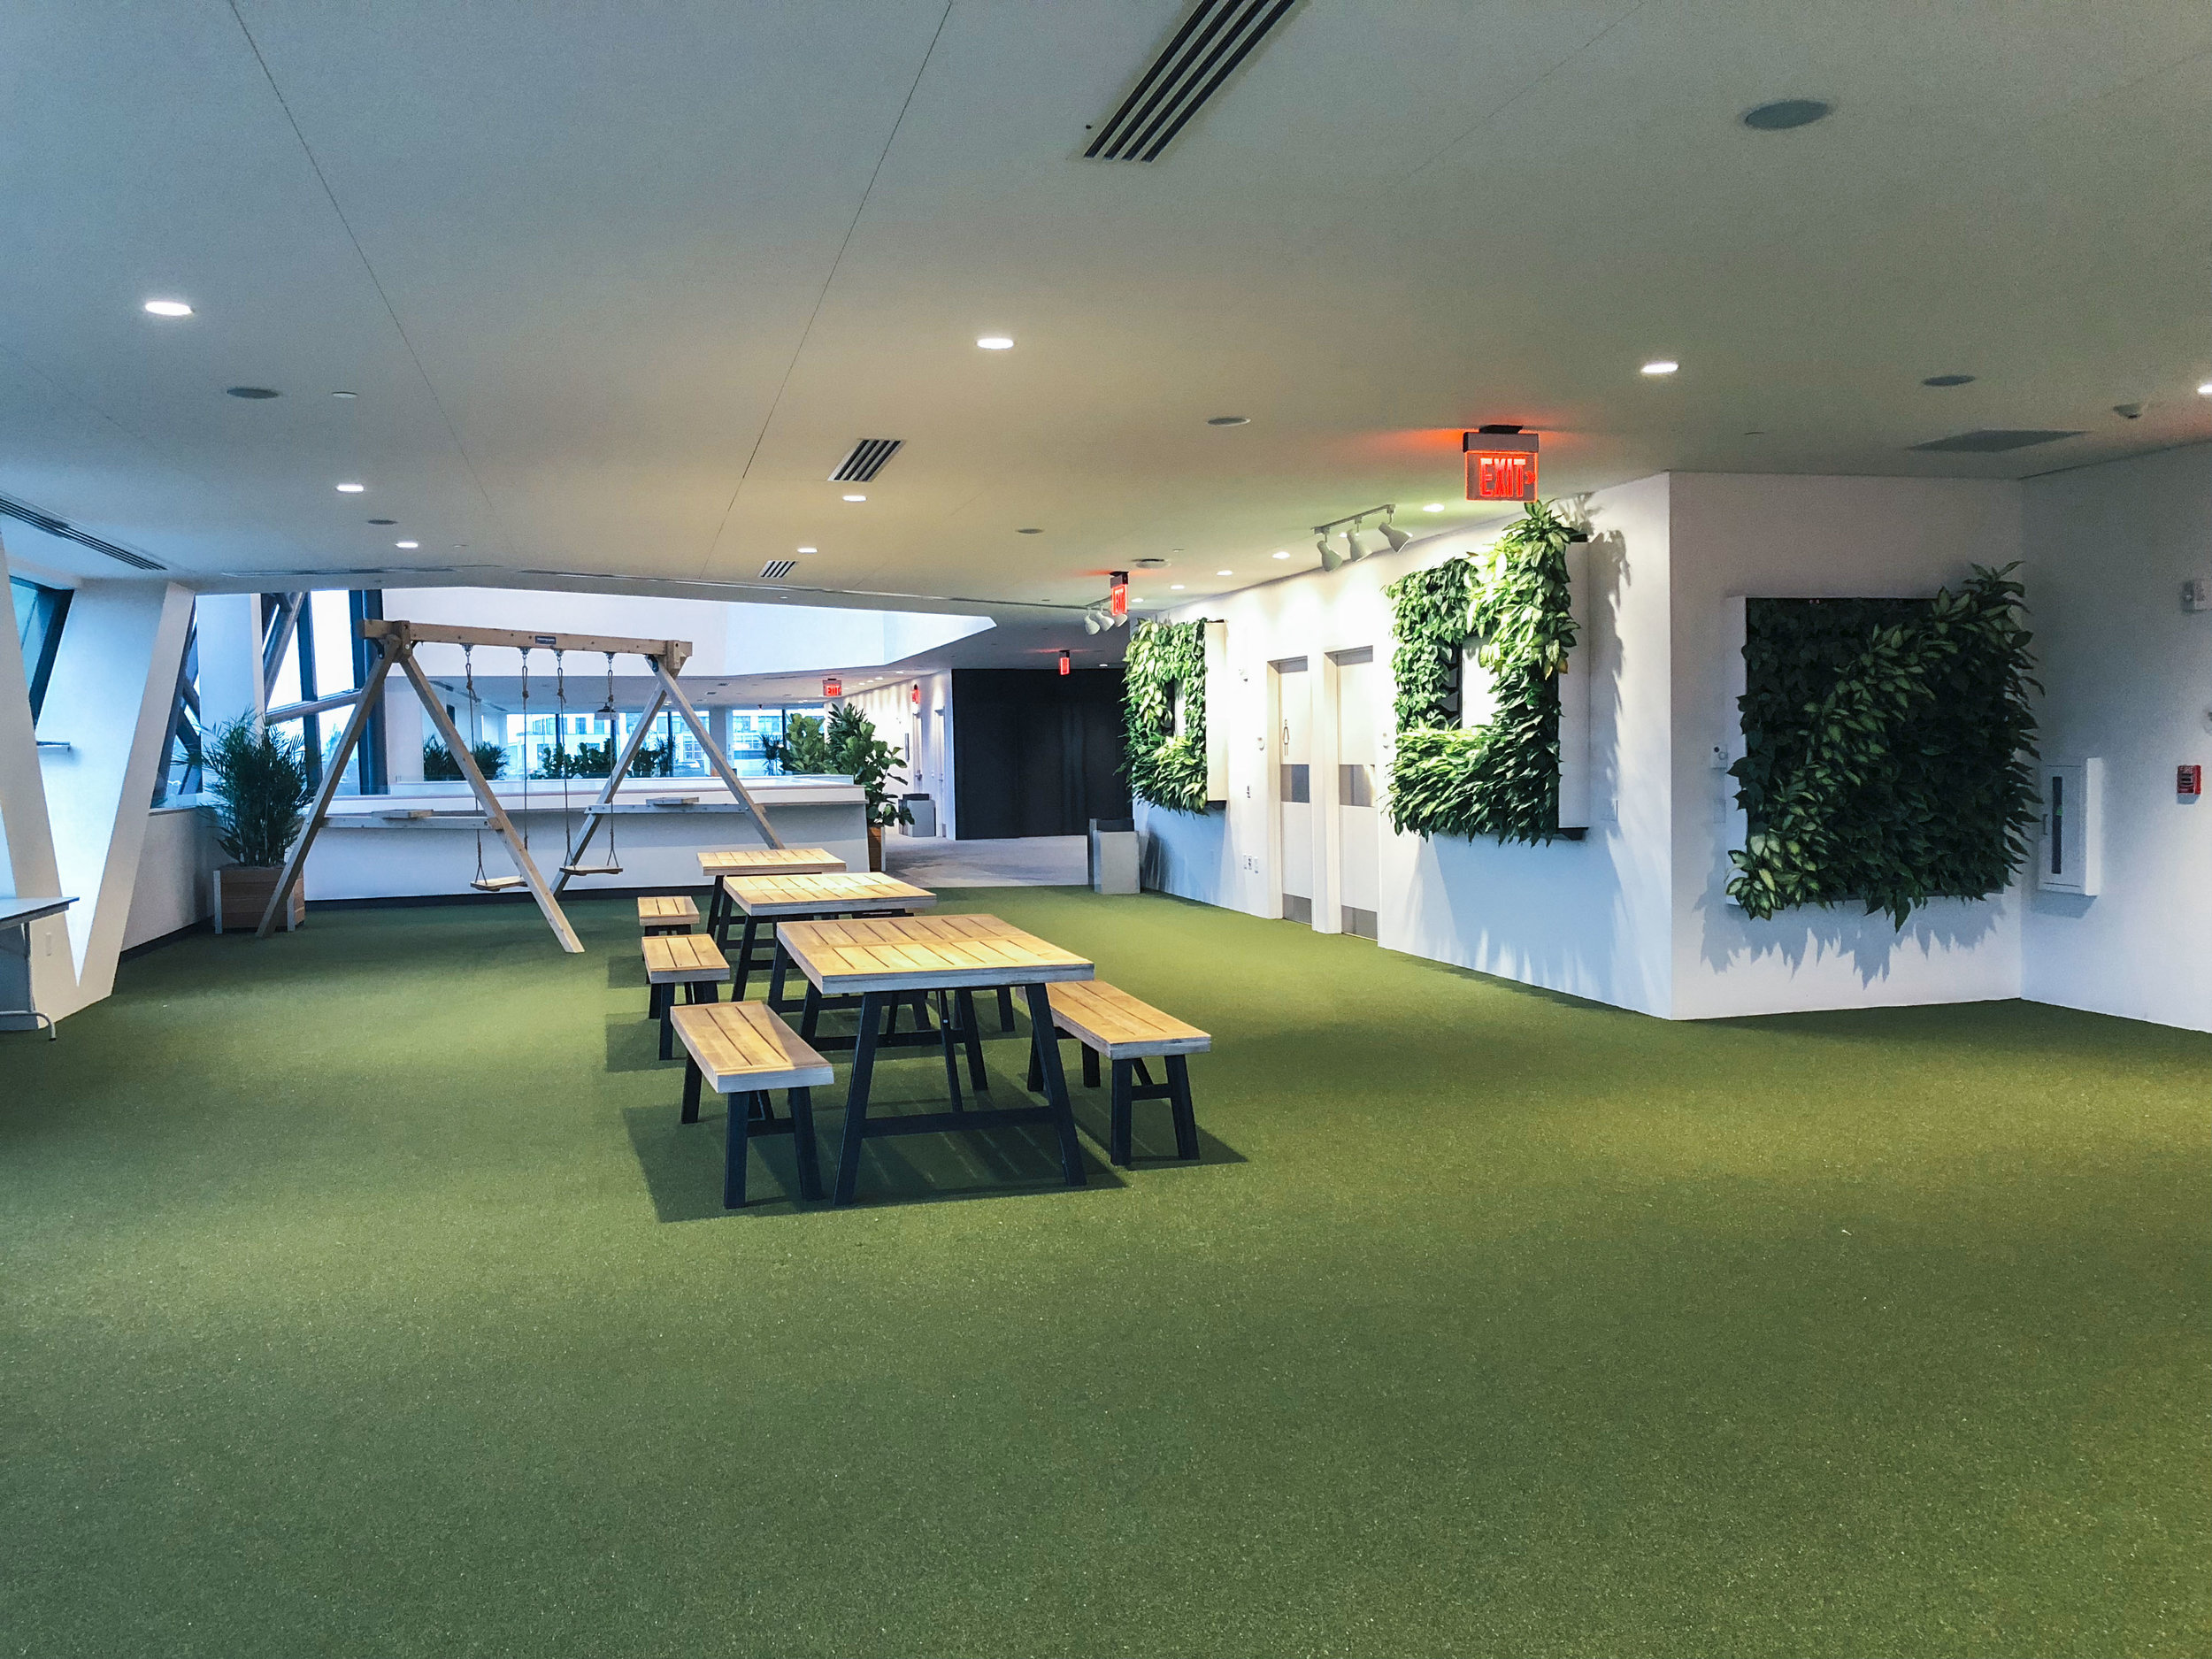 Events space design - Designed an empty floor at the EF Boston Headquarters in Cambridge, MA to accommodate team events and lectures that are provided for employees and the public.